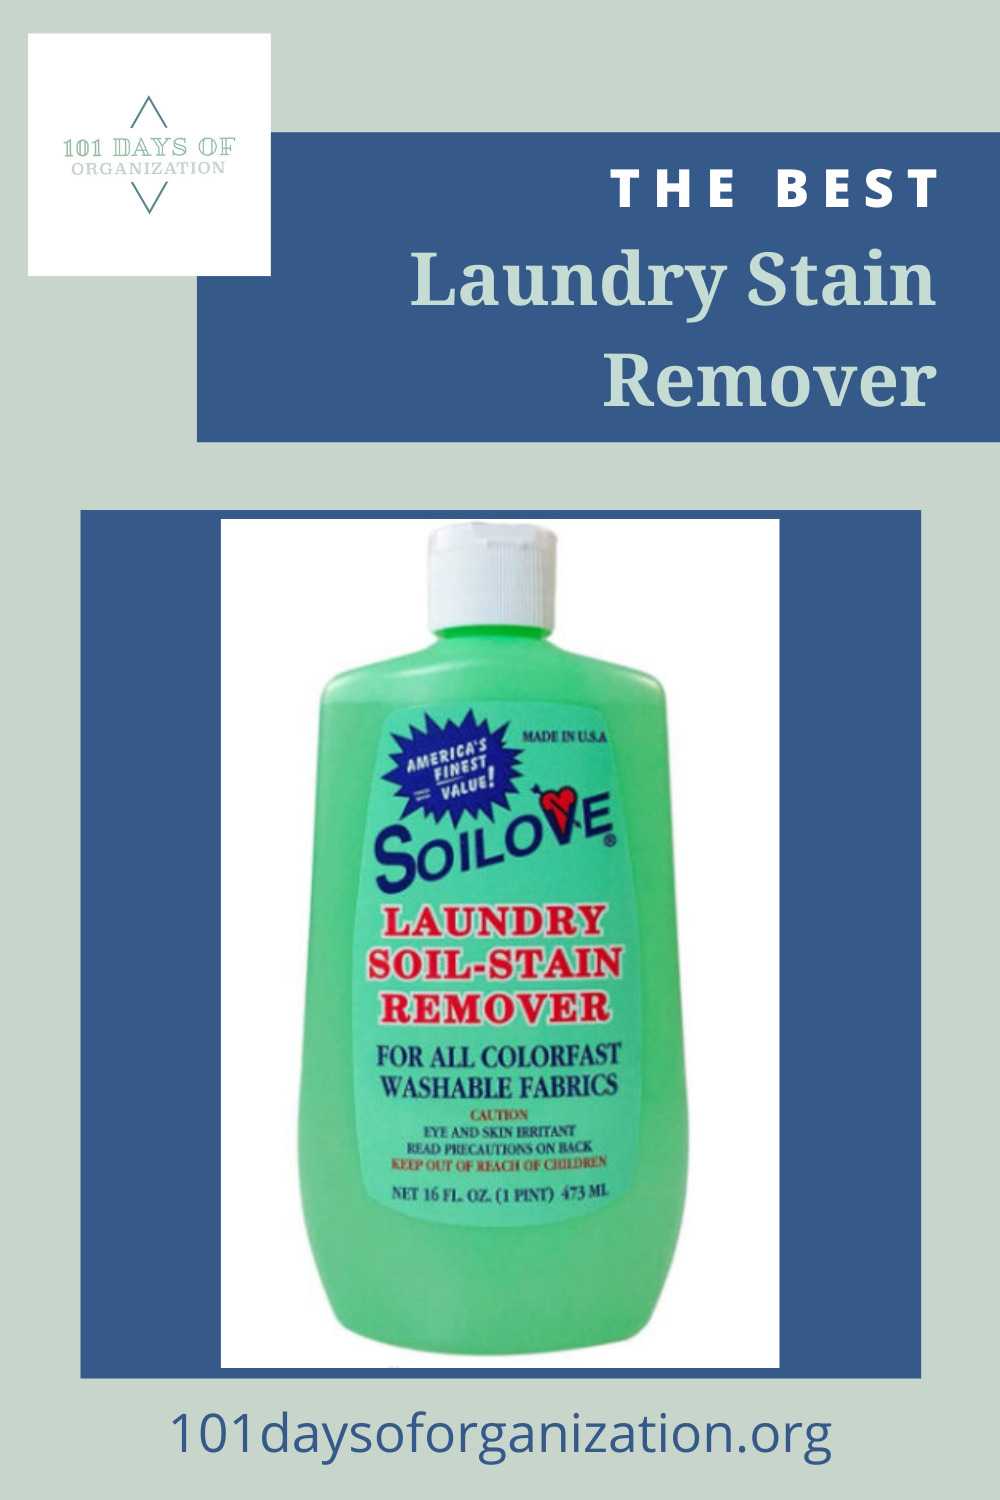 101daysoforganization.org is the ultimate resource for all things cleaning and organization. Don't sweat stubborn stains the next time you do laundry. Try out this incredible stain remover today!